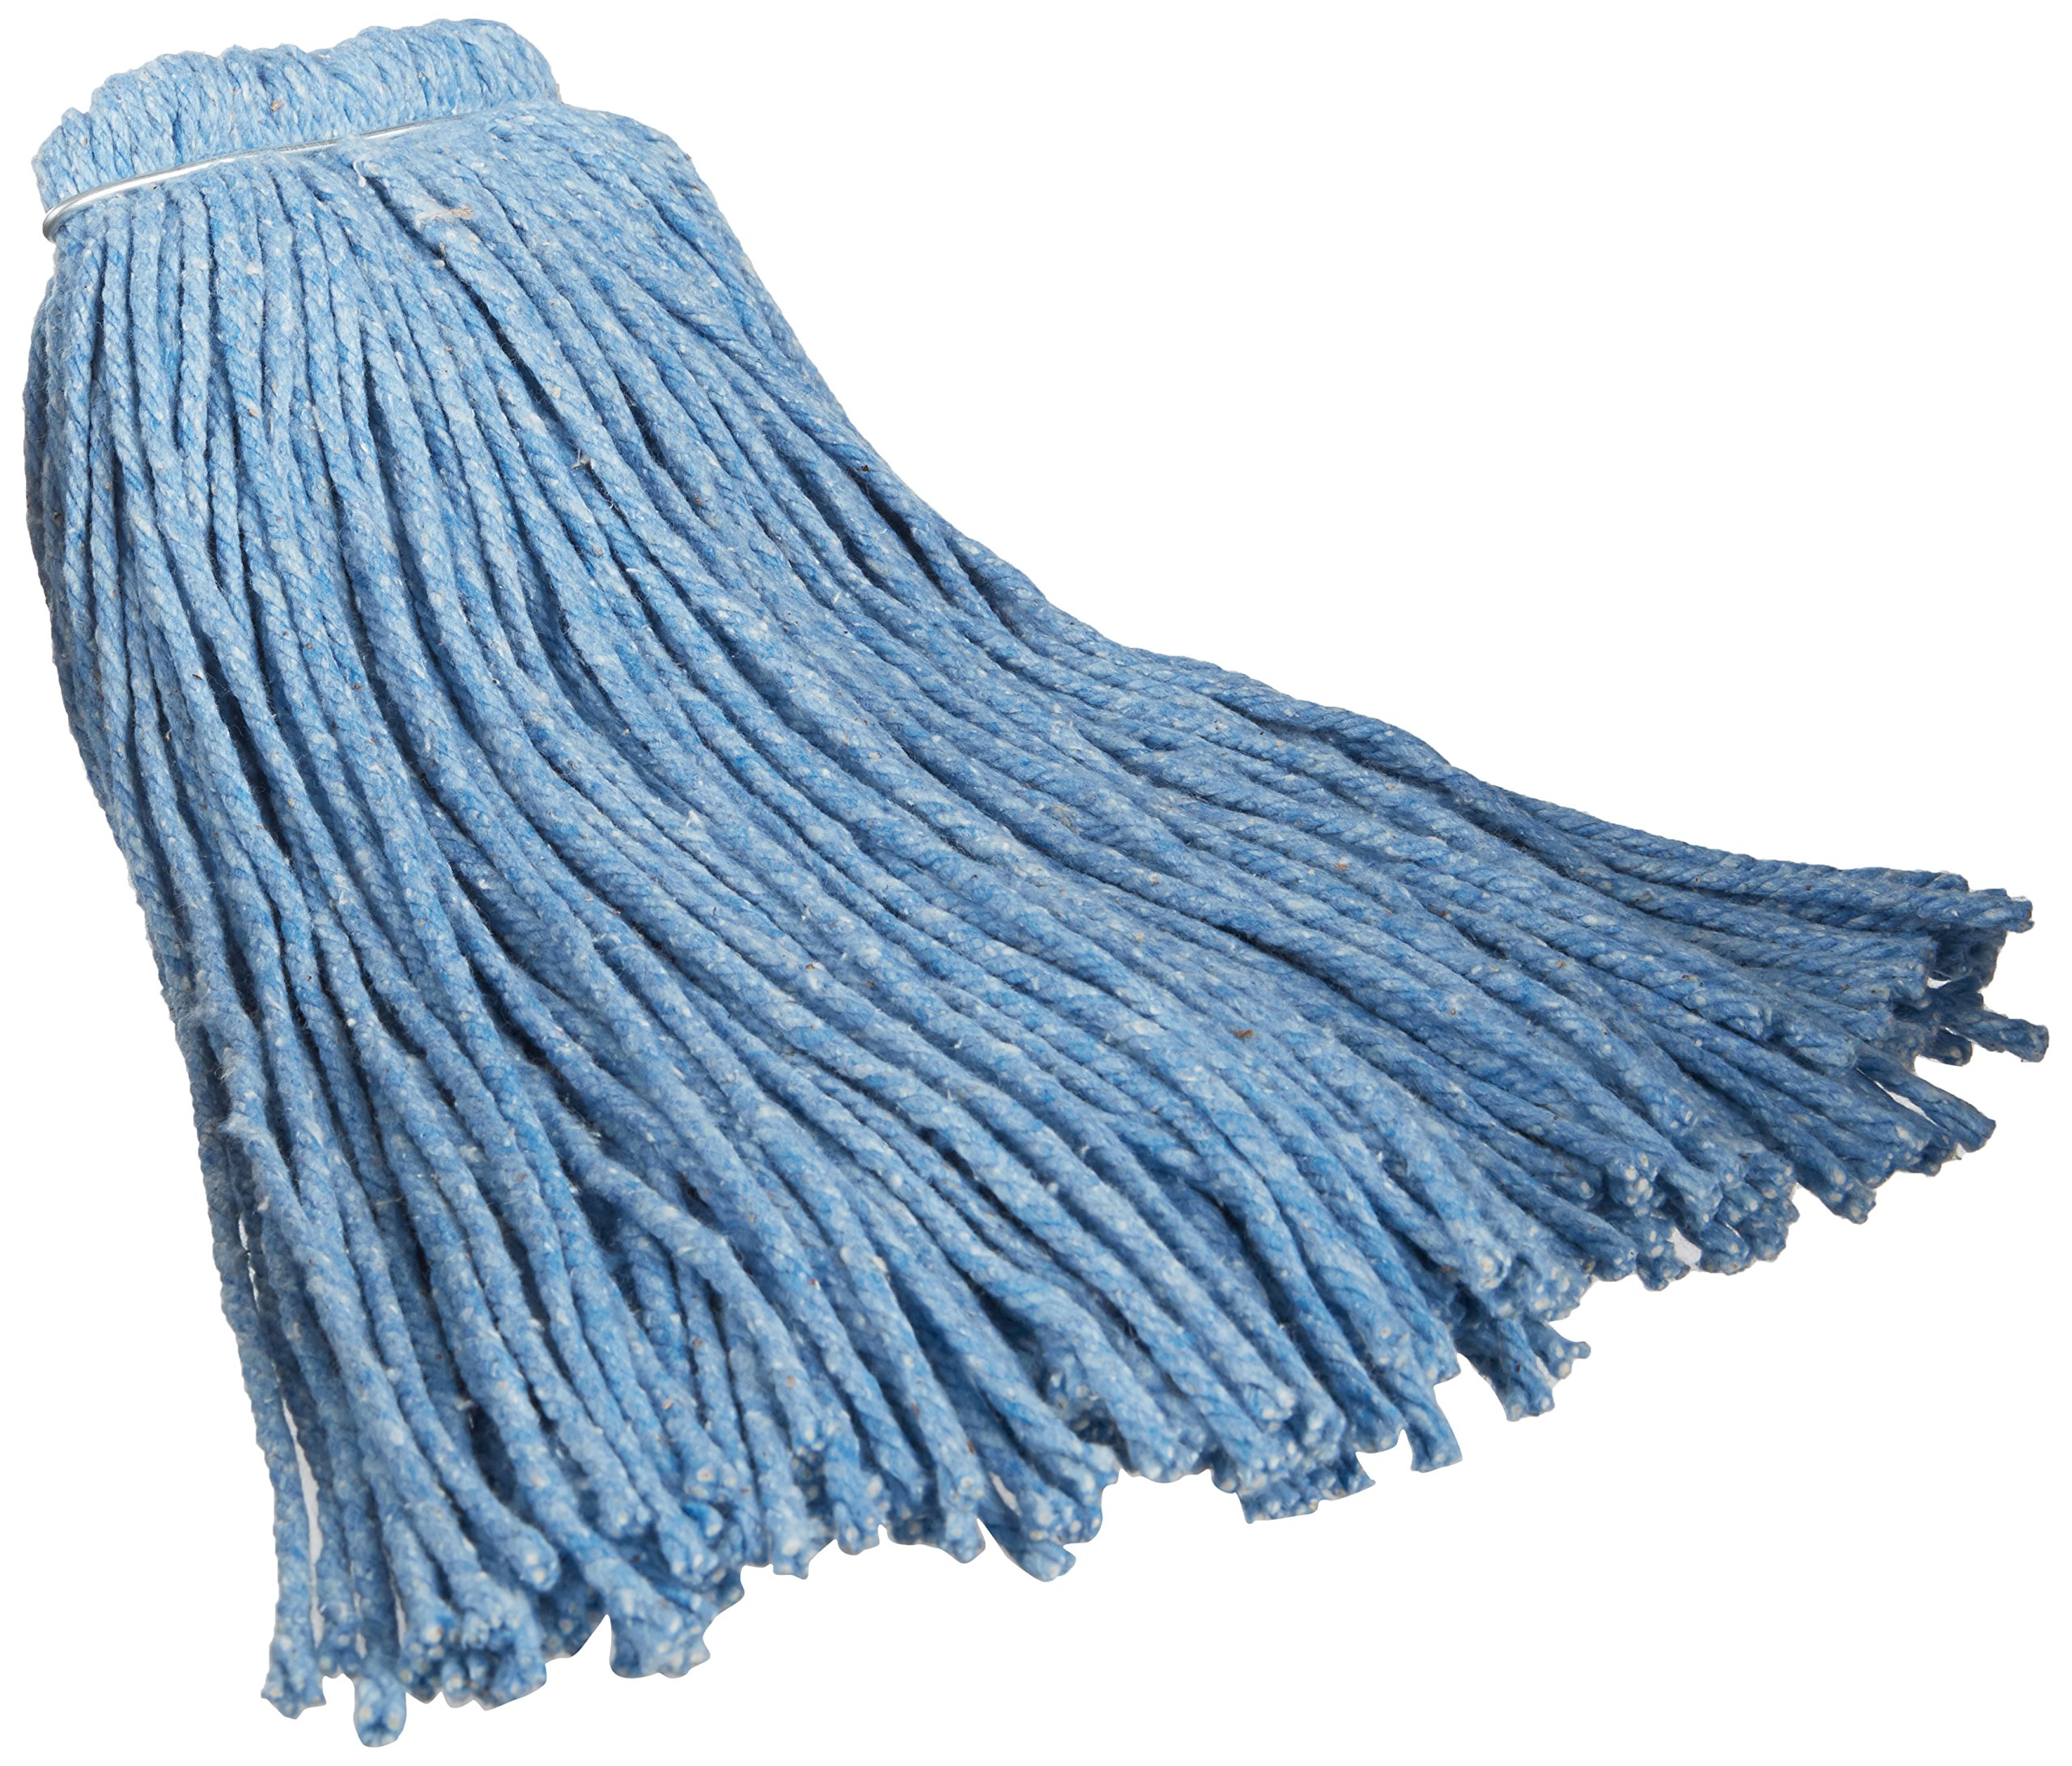 Impact 26520 Valumax Screw-Type Regular Cut-End Blend Wet Mop Head, 20 oz, Blue (Case of 12) by Impact Products (Image #1)